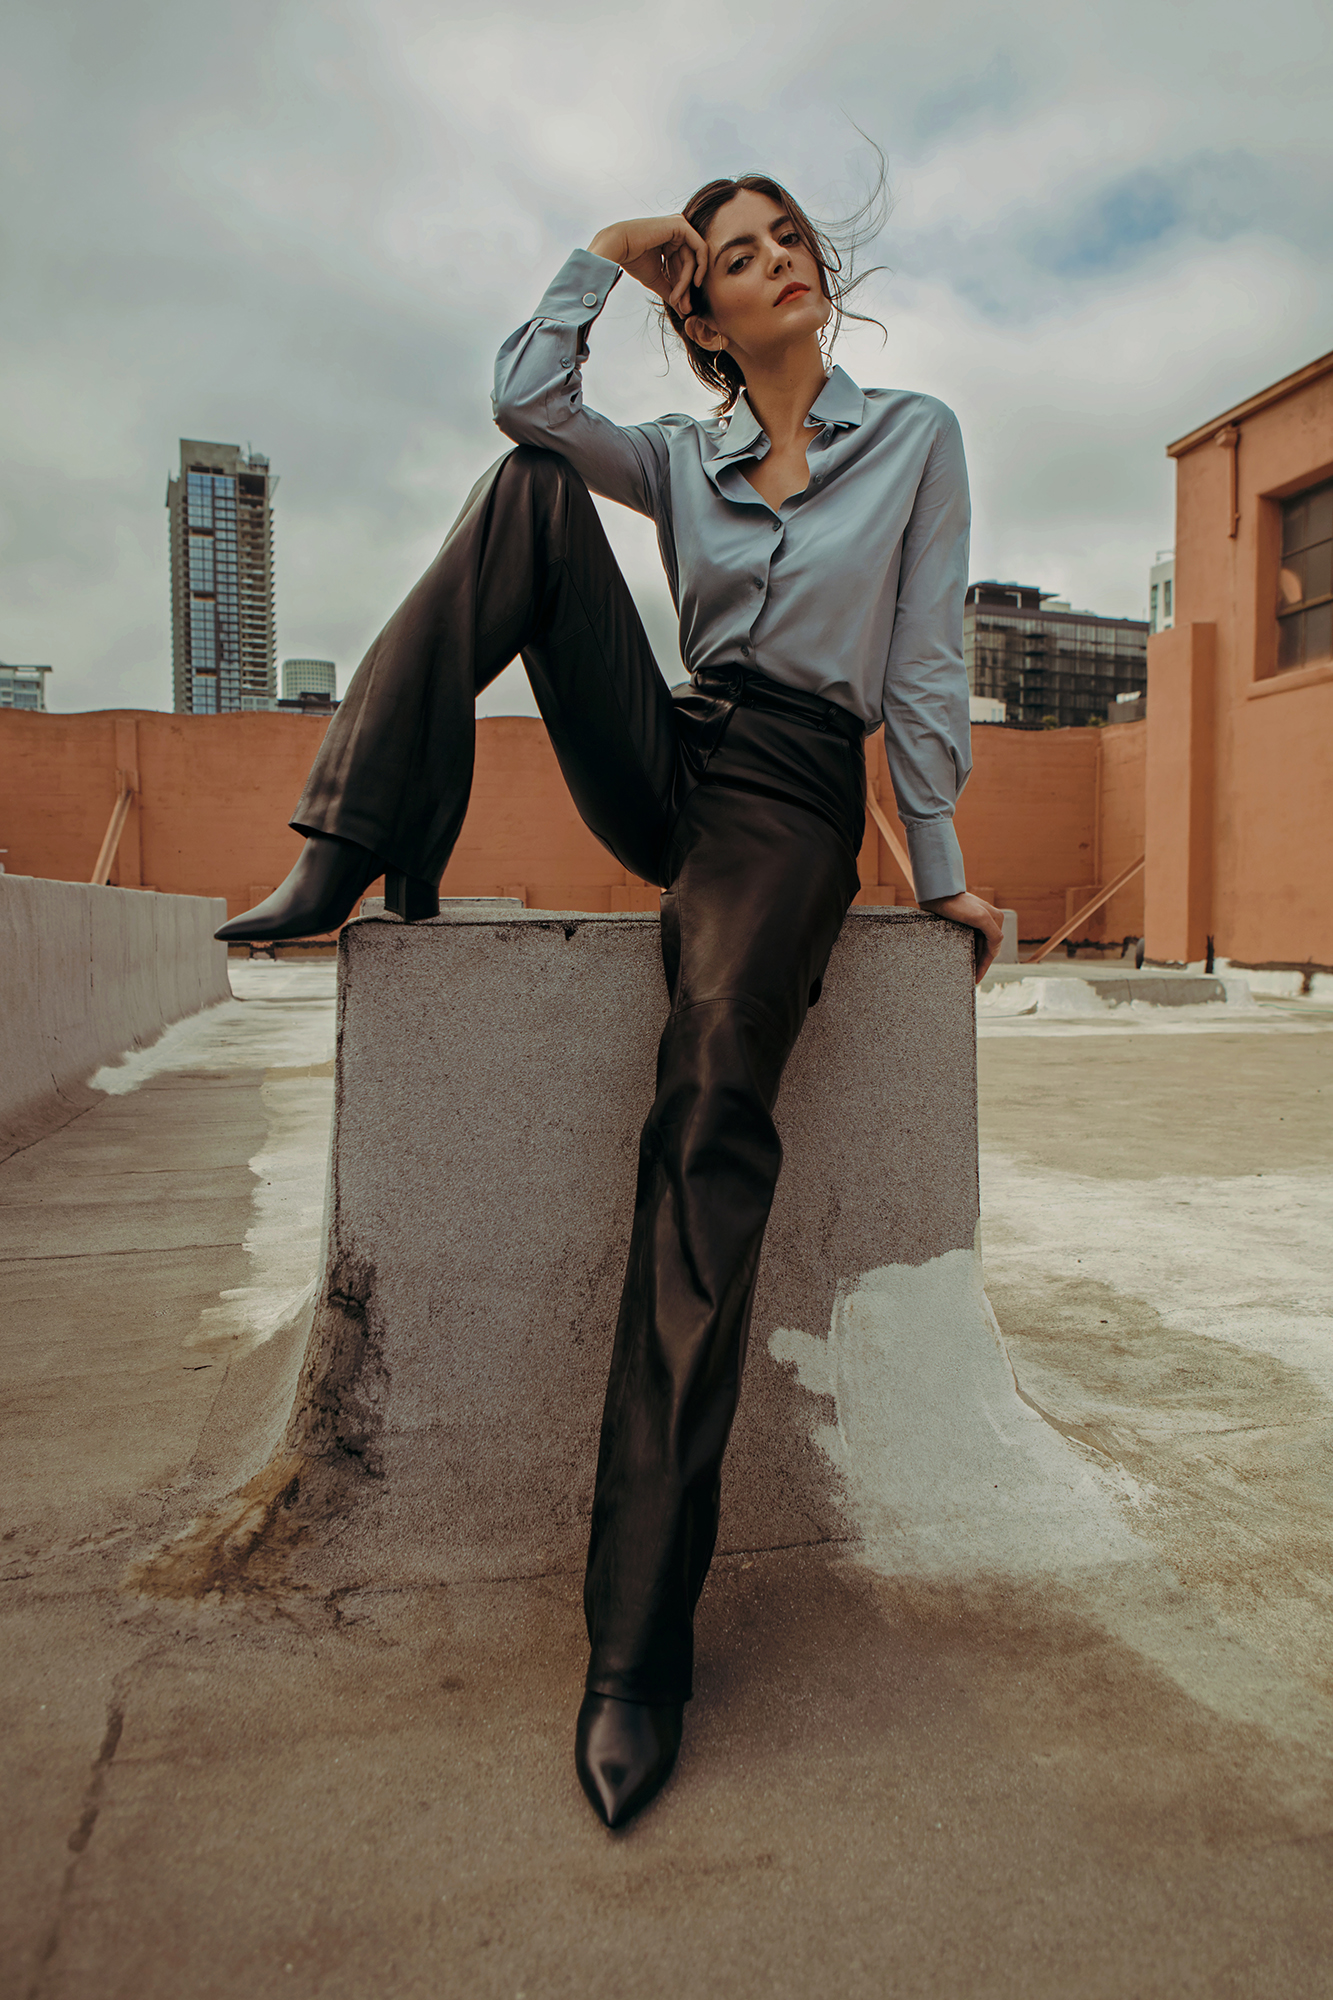 Shirt and trousers by   SALVATORE FERRAGAMO  ; Boots by   MARCO PROIETTI  ; Earrings by   ASOS